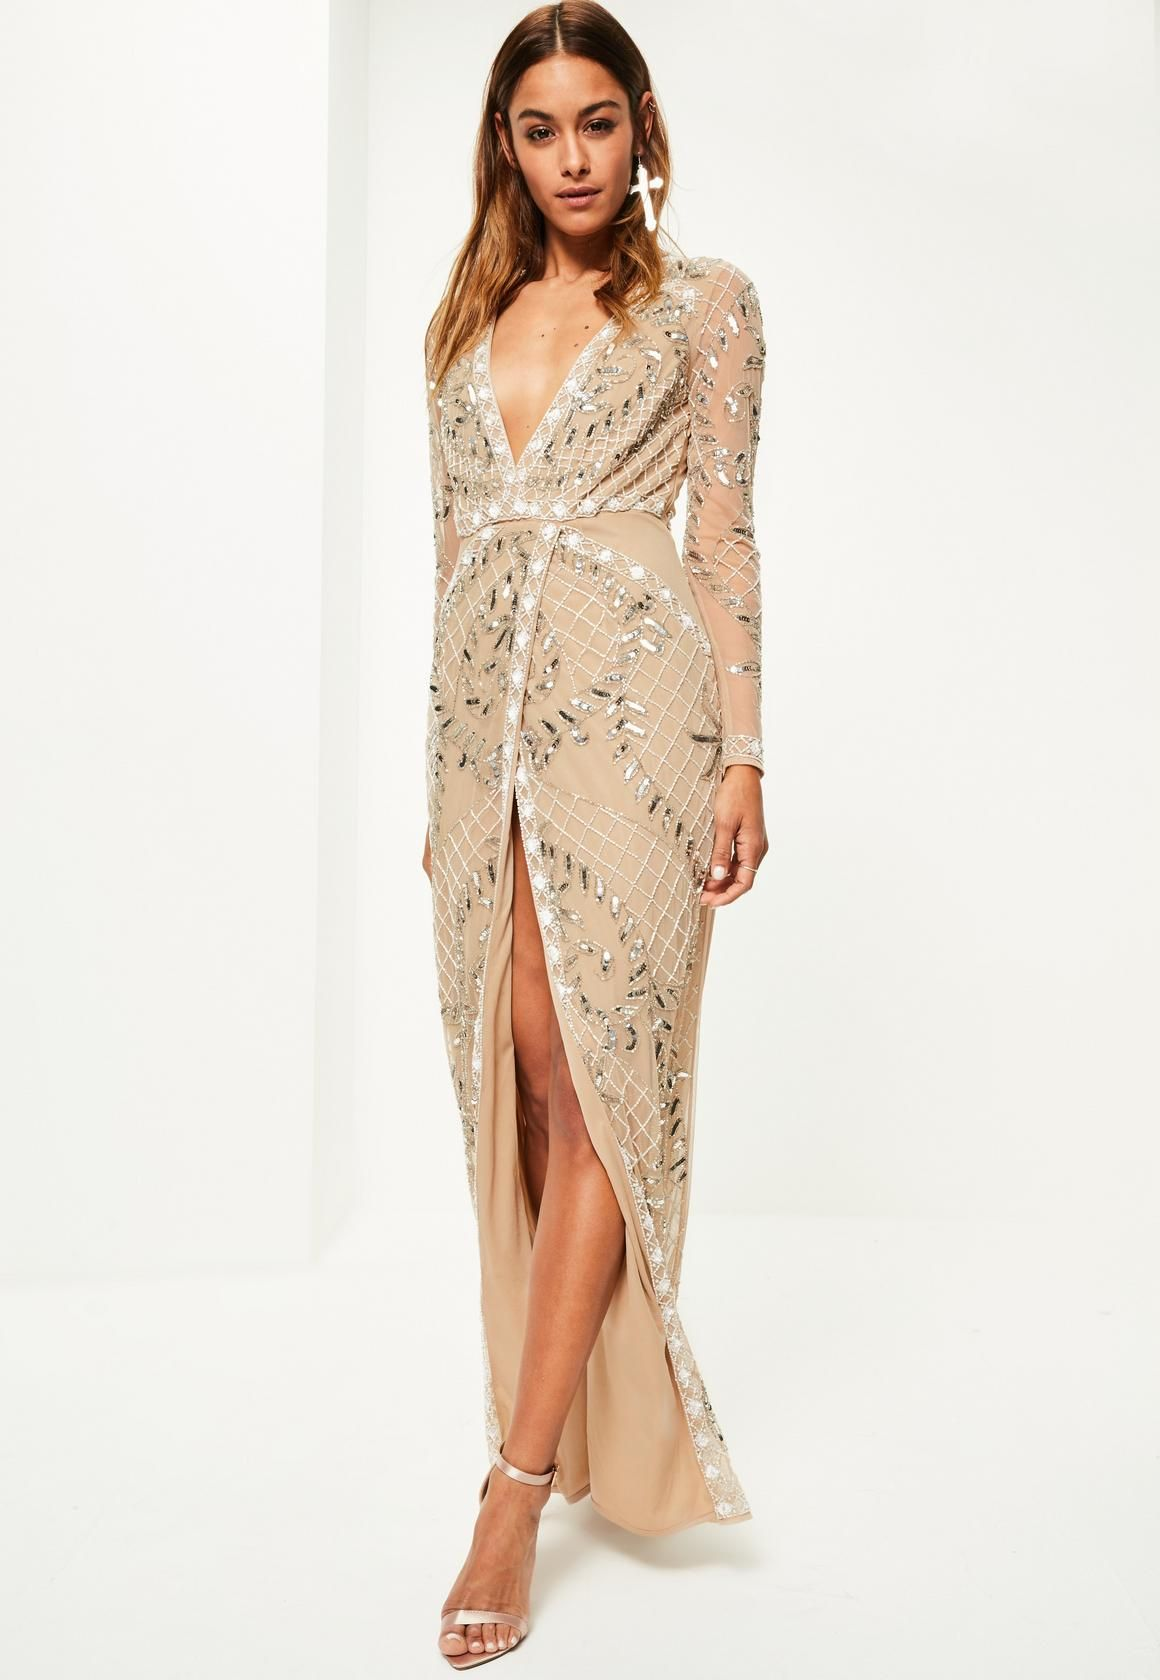 Cheap Sale Authentic Premium Embellished Top Maxi Dress - Cream Missguided View Cheap Online The Best Store To Get jpp78mWeQ